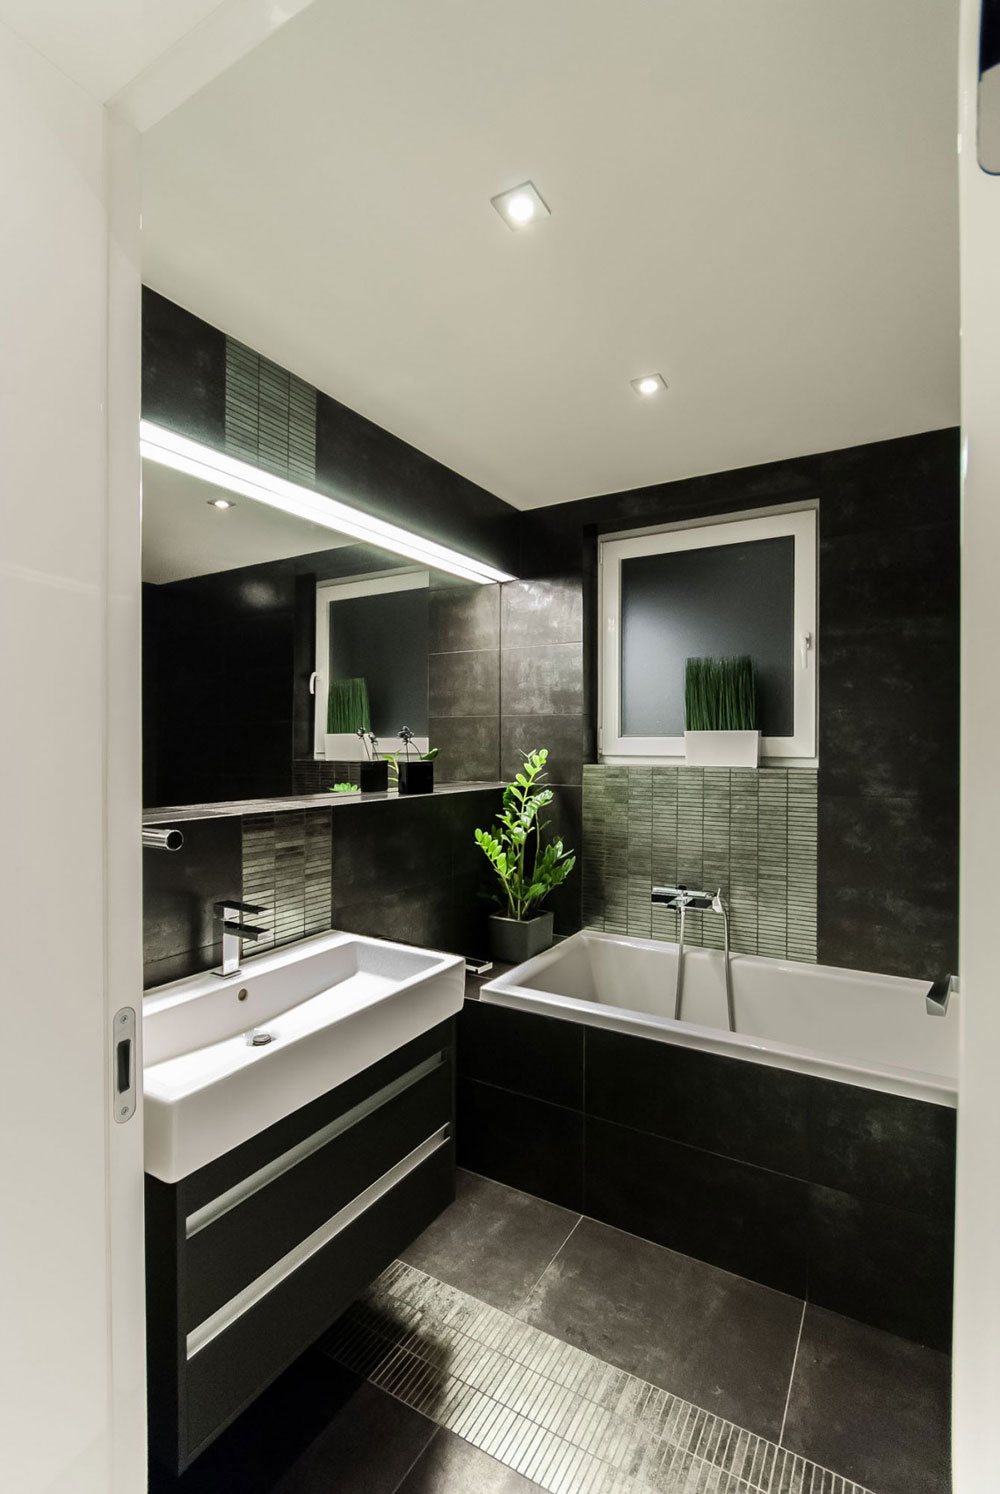 Classic bathroom-interior-design-examples-that-stand-out-1 Classic-bathroom-interior-design-examples-that-stand out